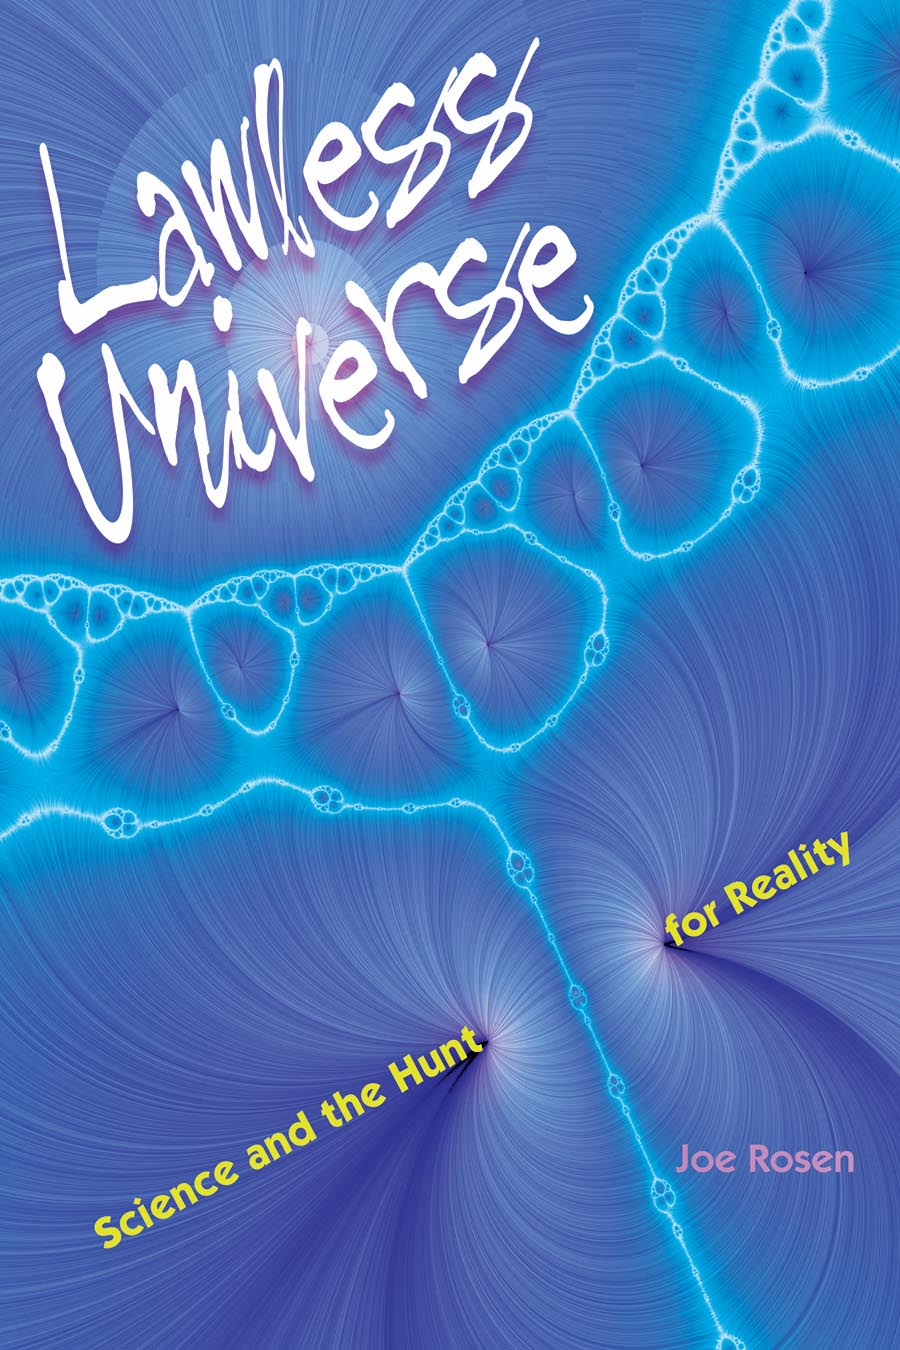 Lawless Universe – Science and the Hunt for Reality life the universe and everything